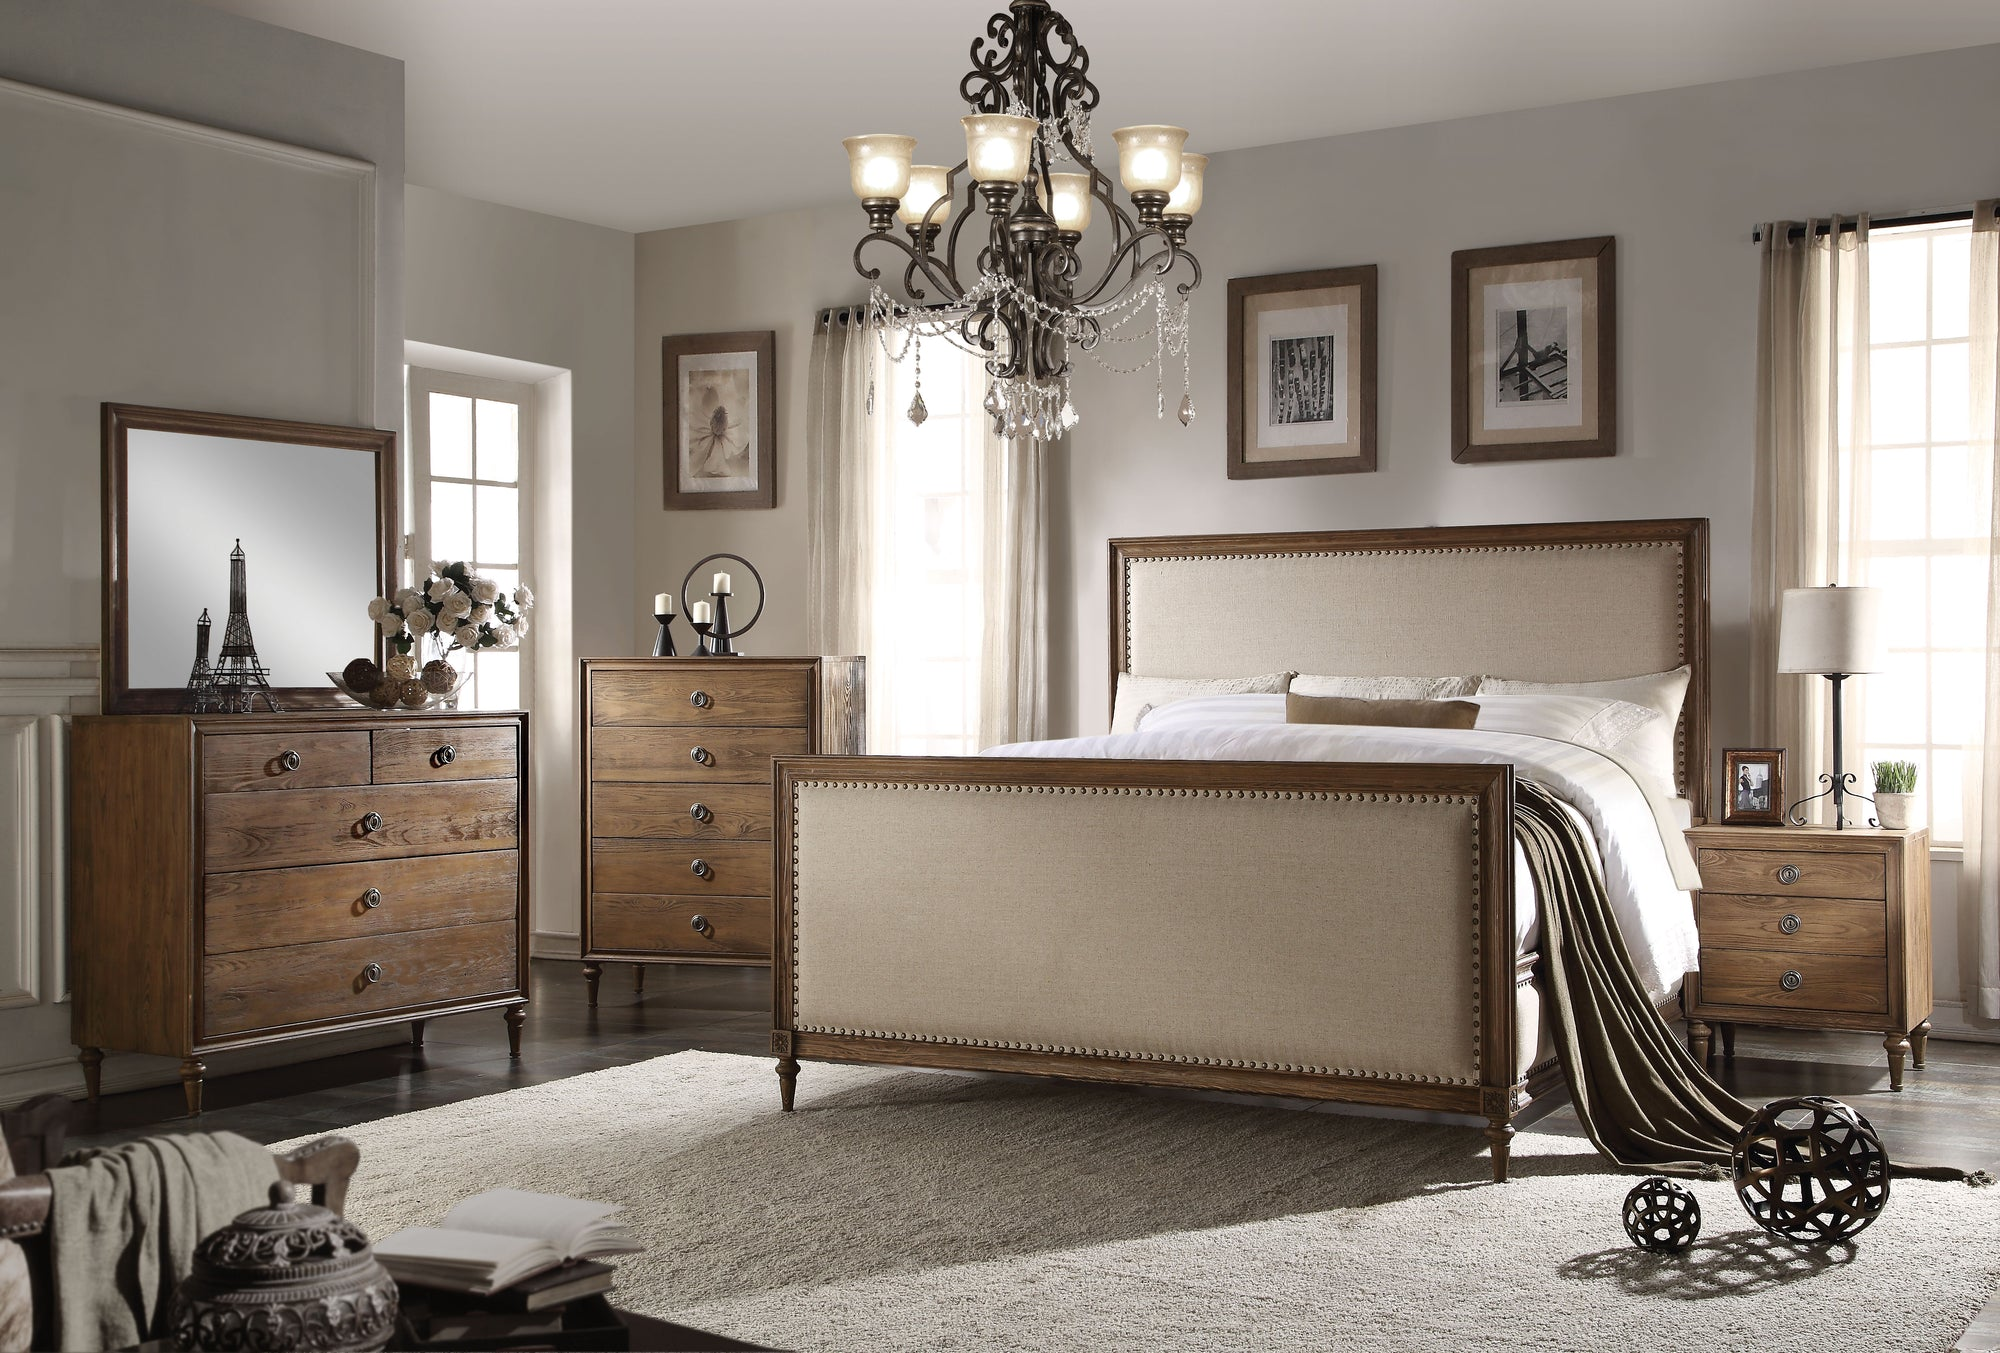 Inverness bedroom set - 5PC